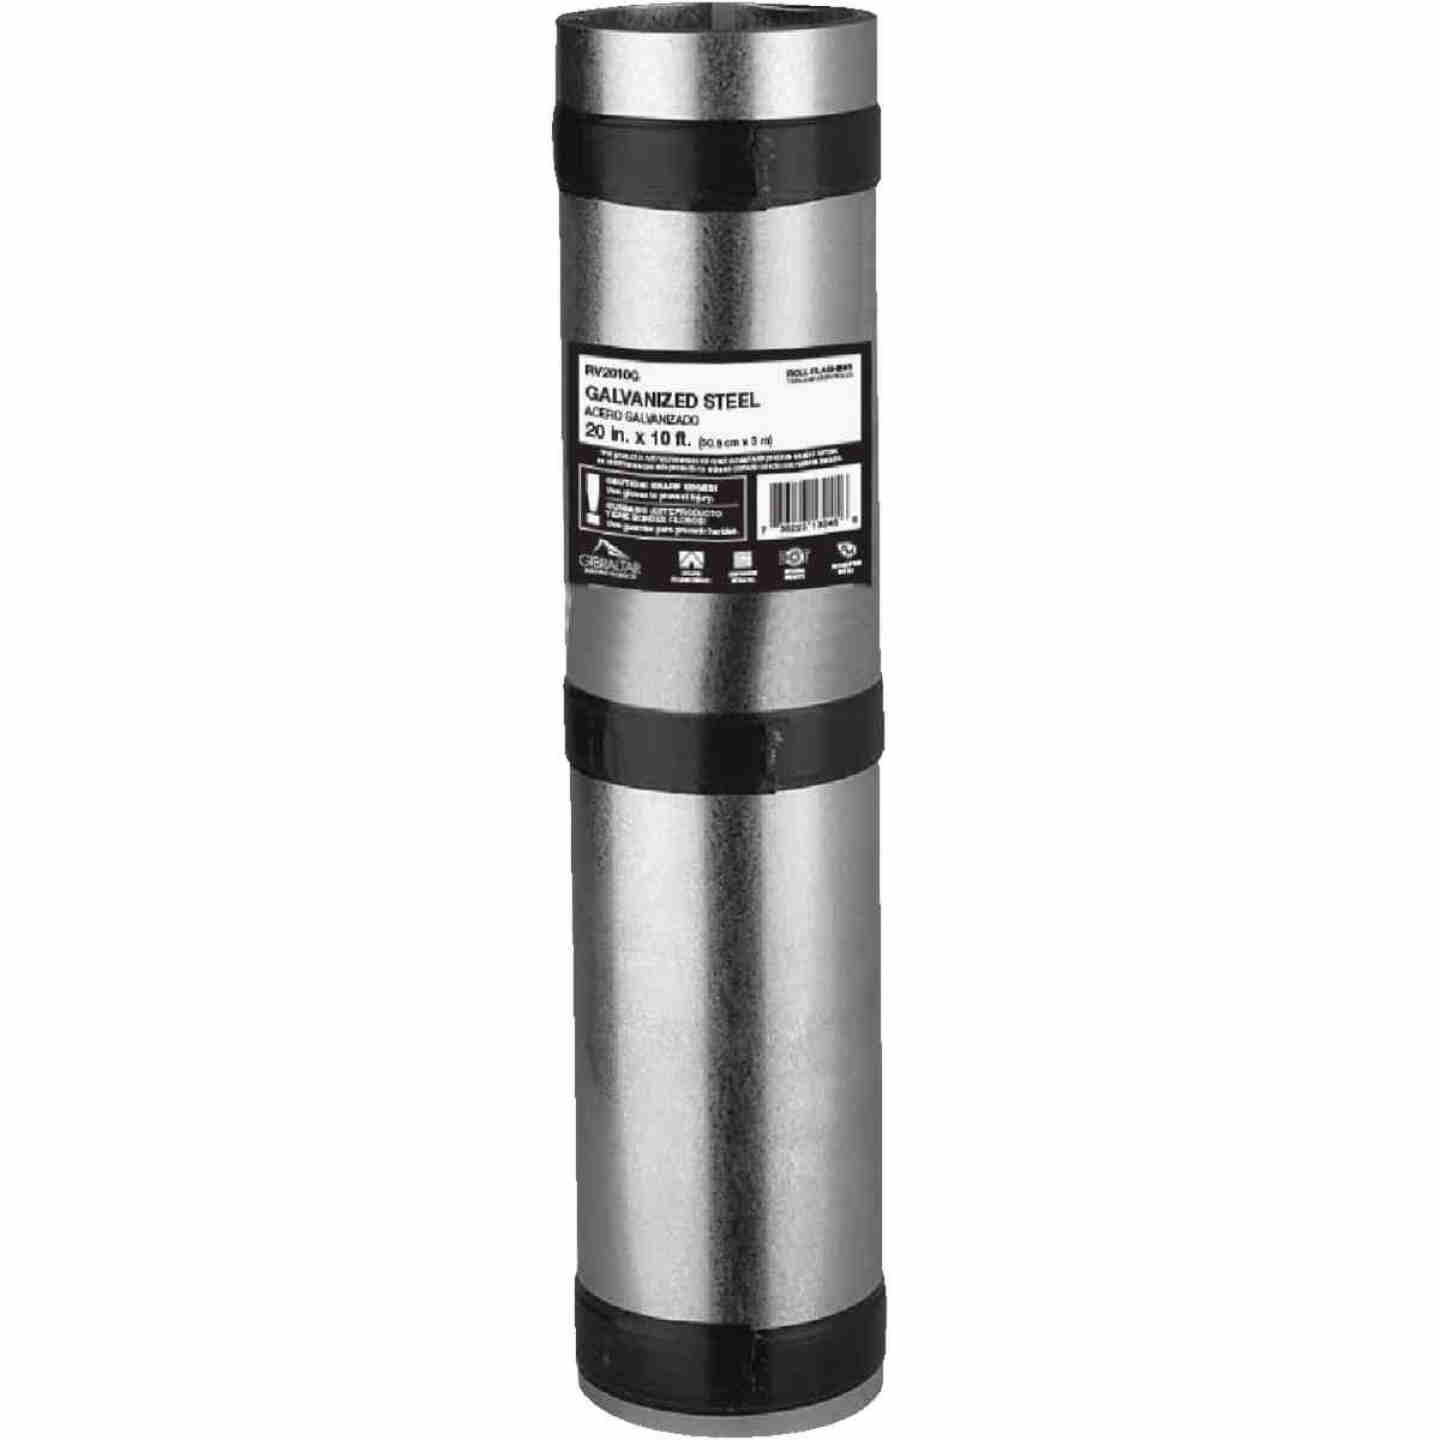 NorWesco 20 In. x 10 Ft. Mill Galvanized Roll Valley Flashing Image 1